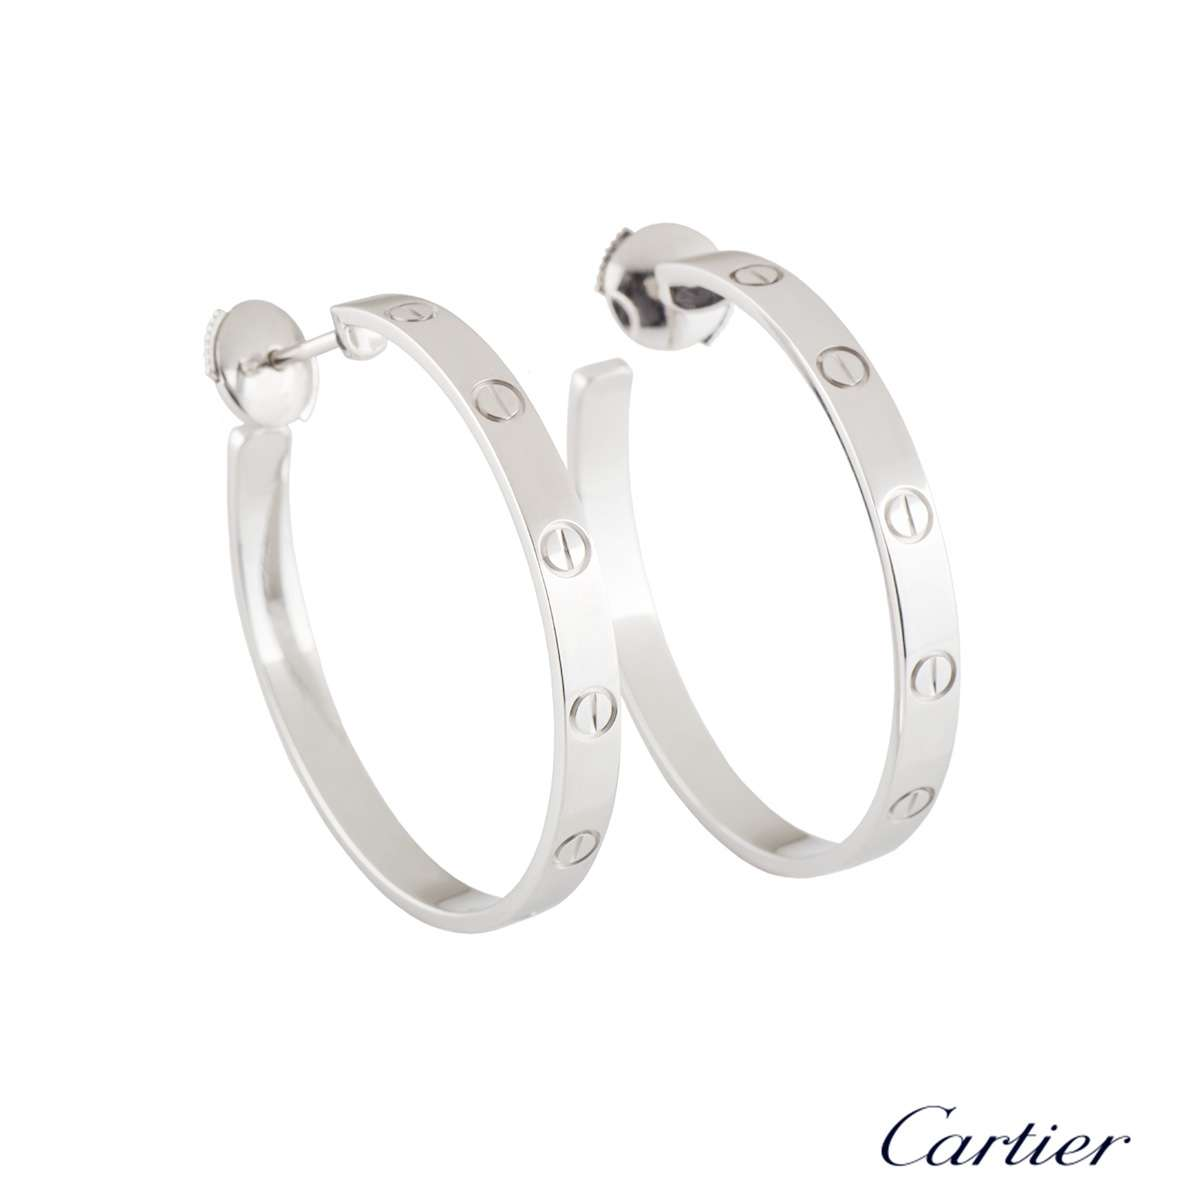 Cartier White Gold Plain Love Earrings B8028300